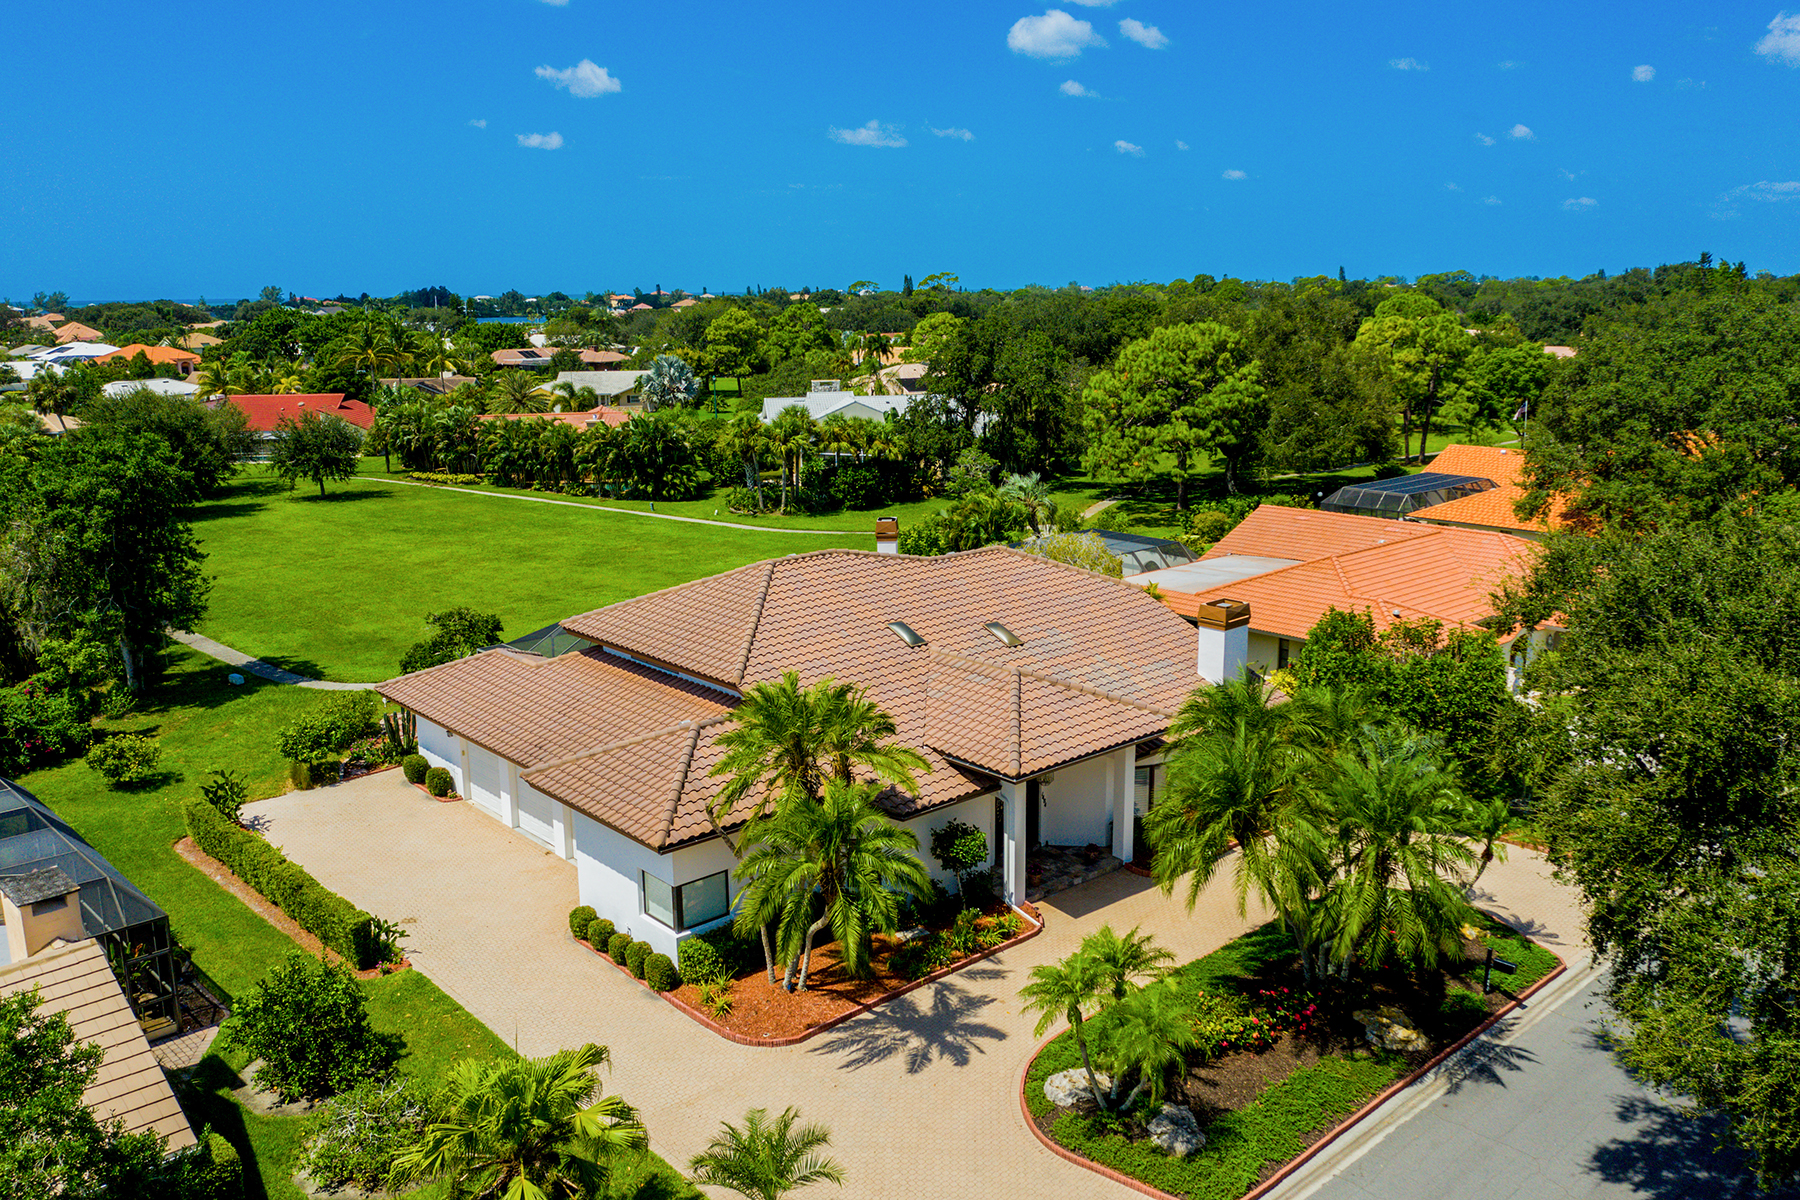 Single Family Homes for Sale at SOUTH YACHT & RACQUET CLUB 1484 Seafarer Dr, Osprey, Florida 34229 United States